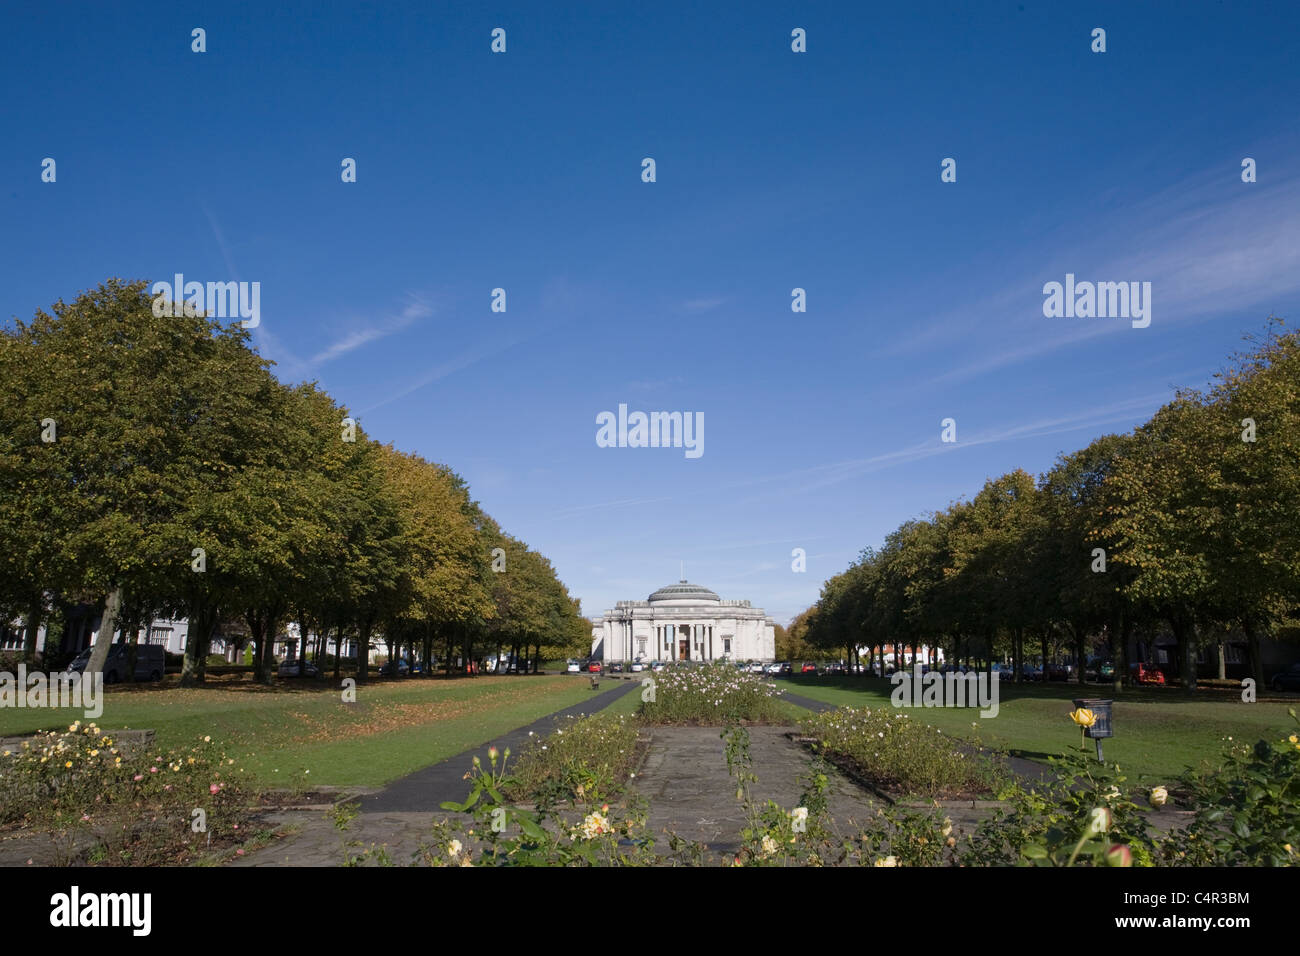 View to Art Gallery, Port Sunlight Village, Wirral, Cheshire, England - Stock Image